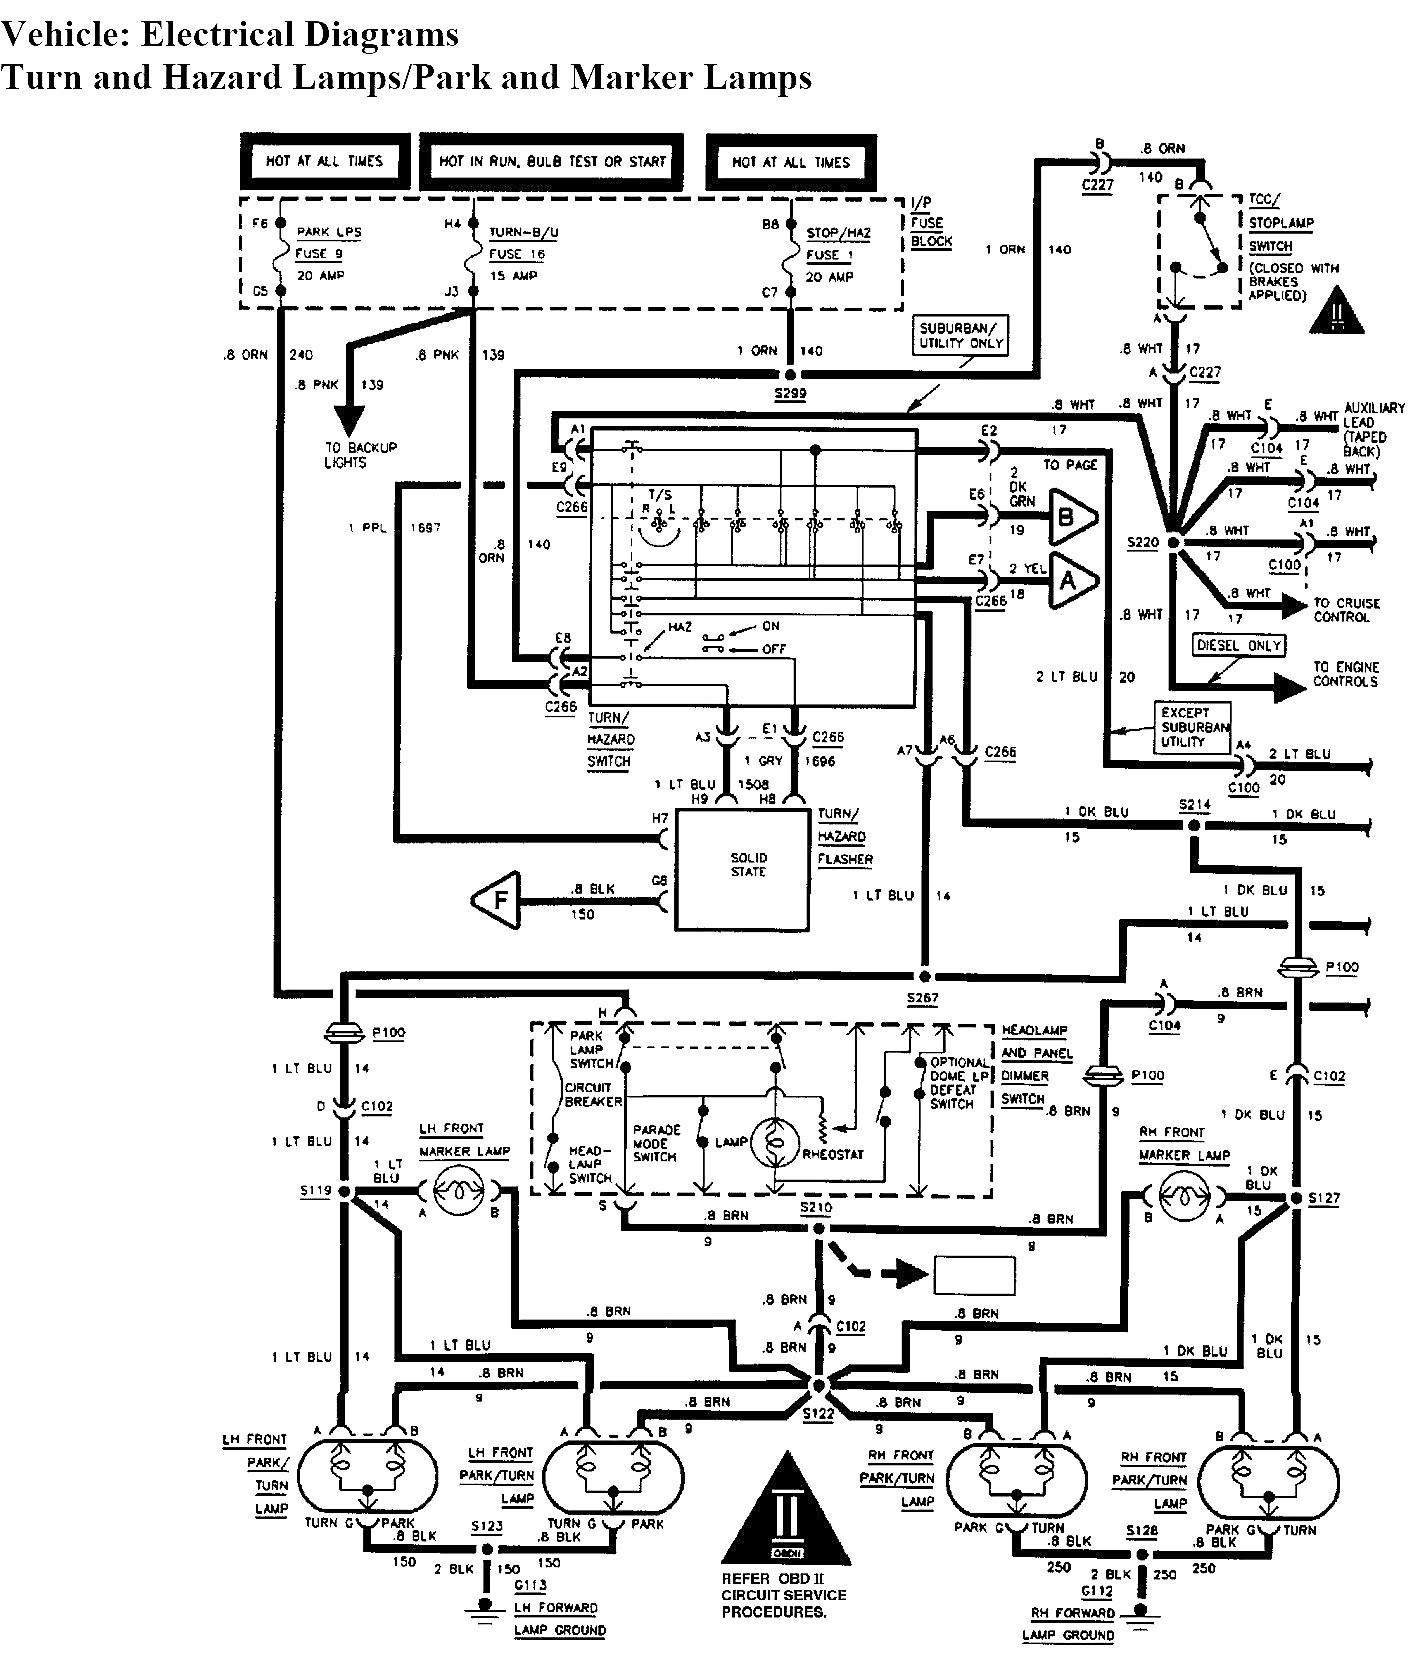 1988 S10 Lighting Wiring Diagram Basic Guide Pdf Tail Light Wire Center U2022 Rh 66 42 74 58 1984 Chevy